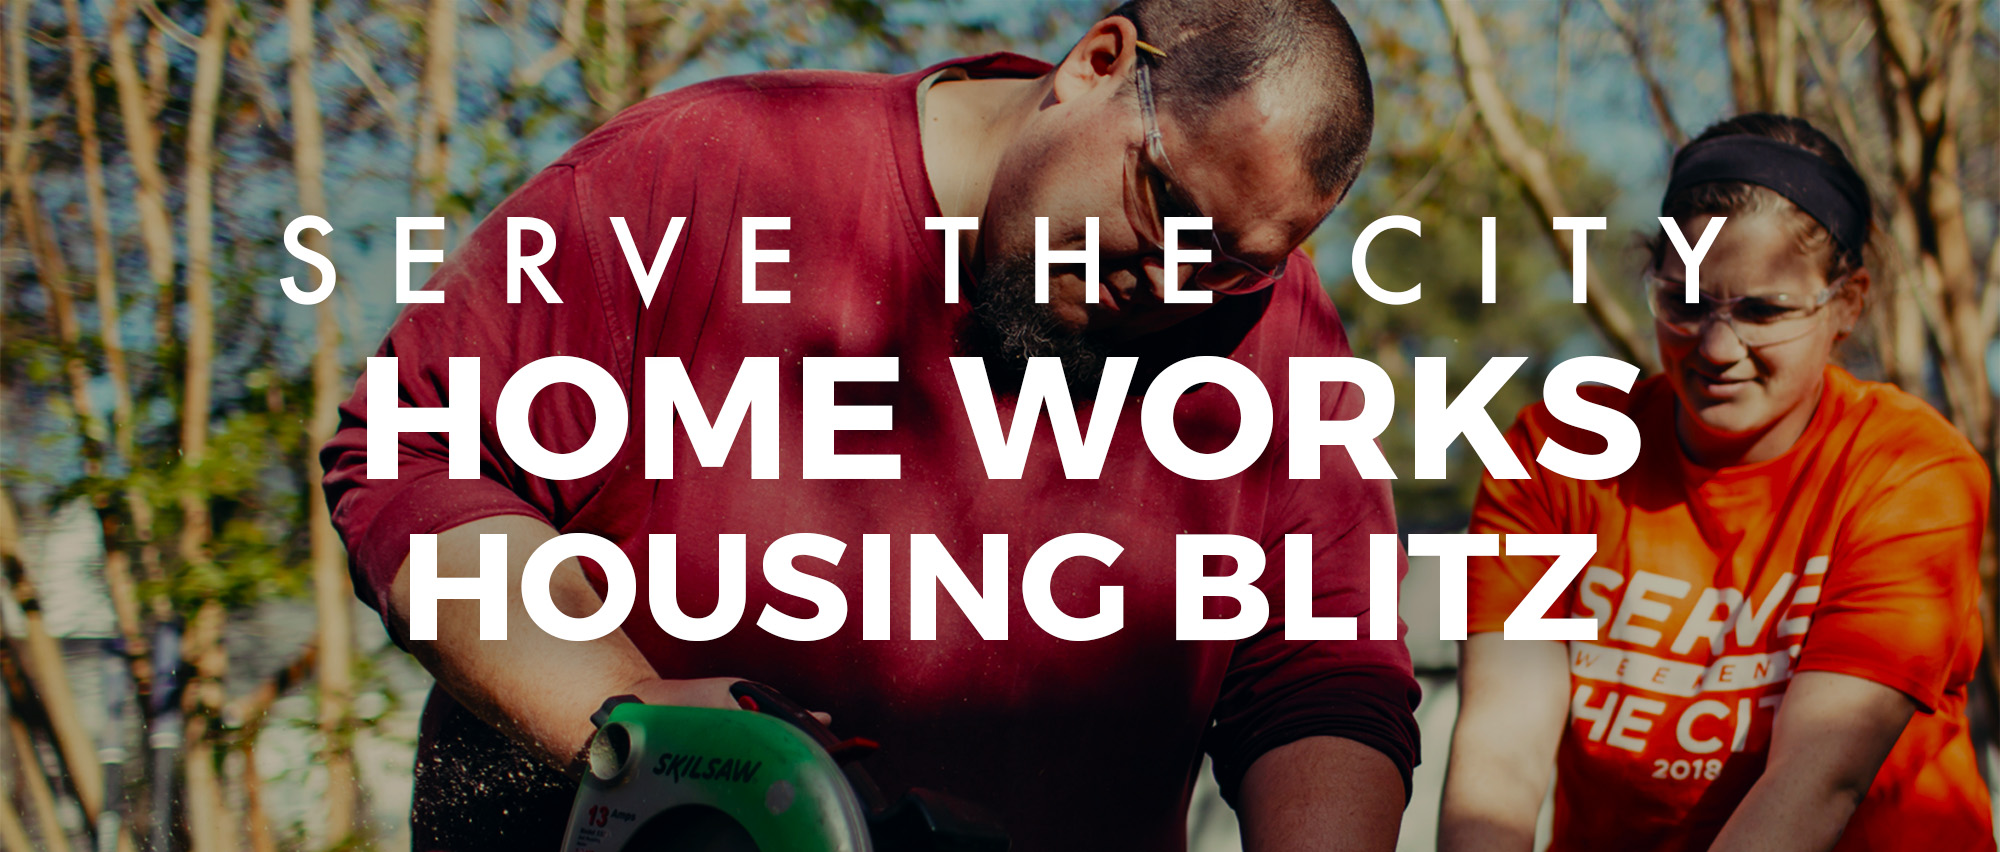 Homeworks Housing Blitz Web.jpg